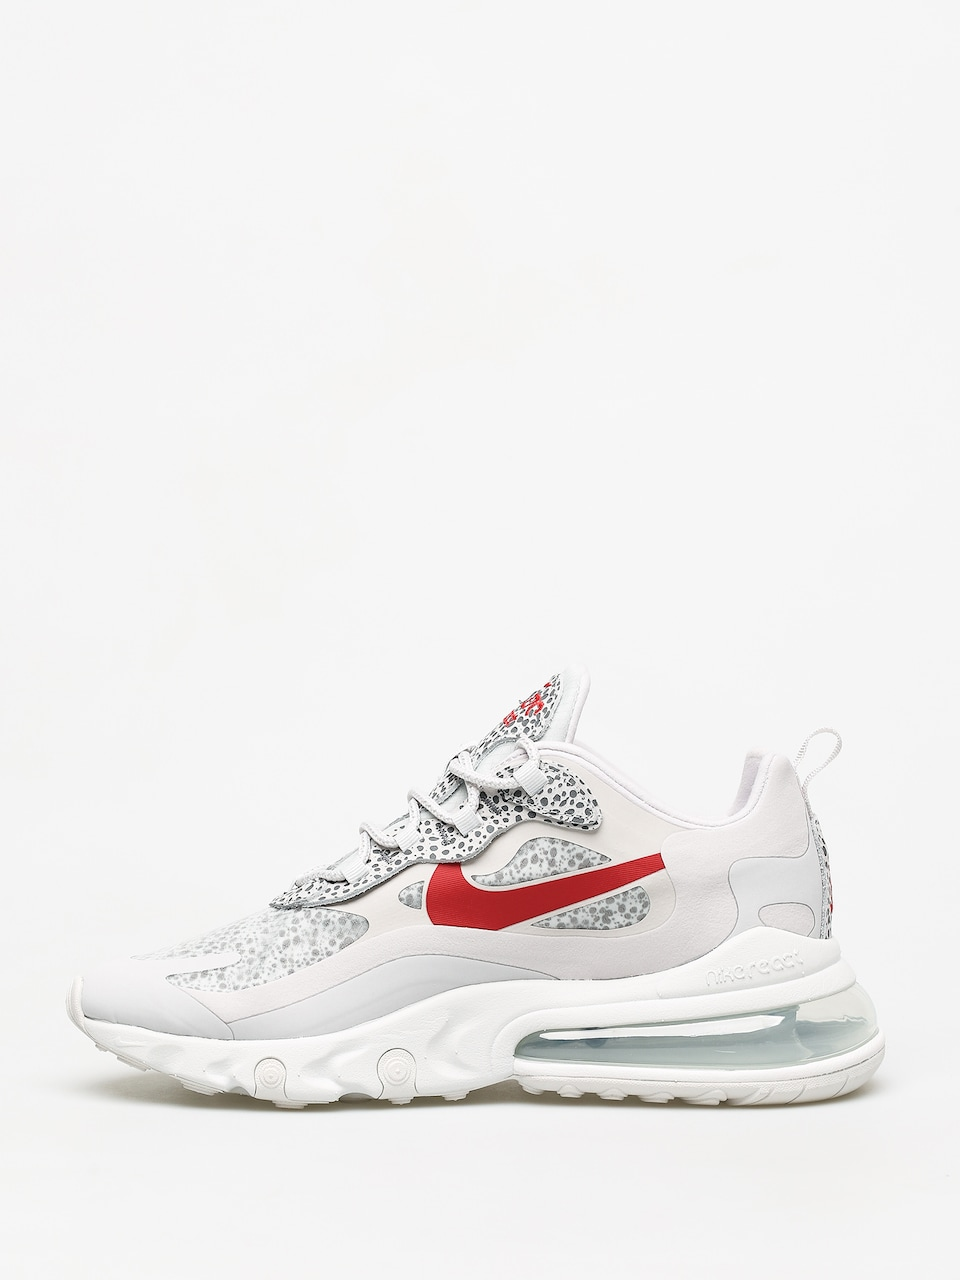 air max 270 react neutral grey